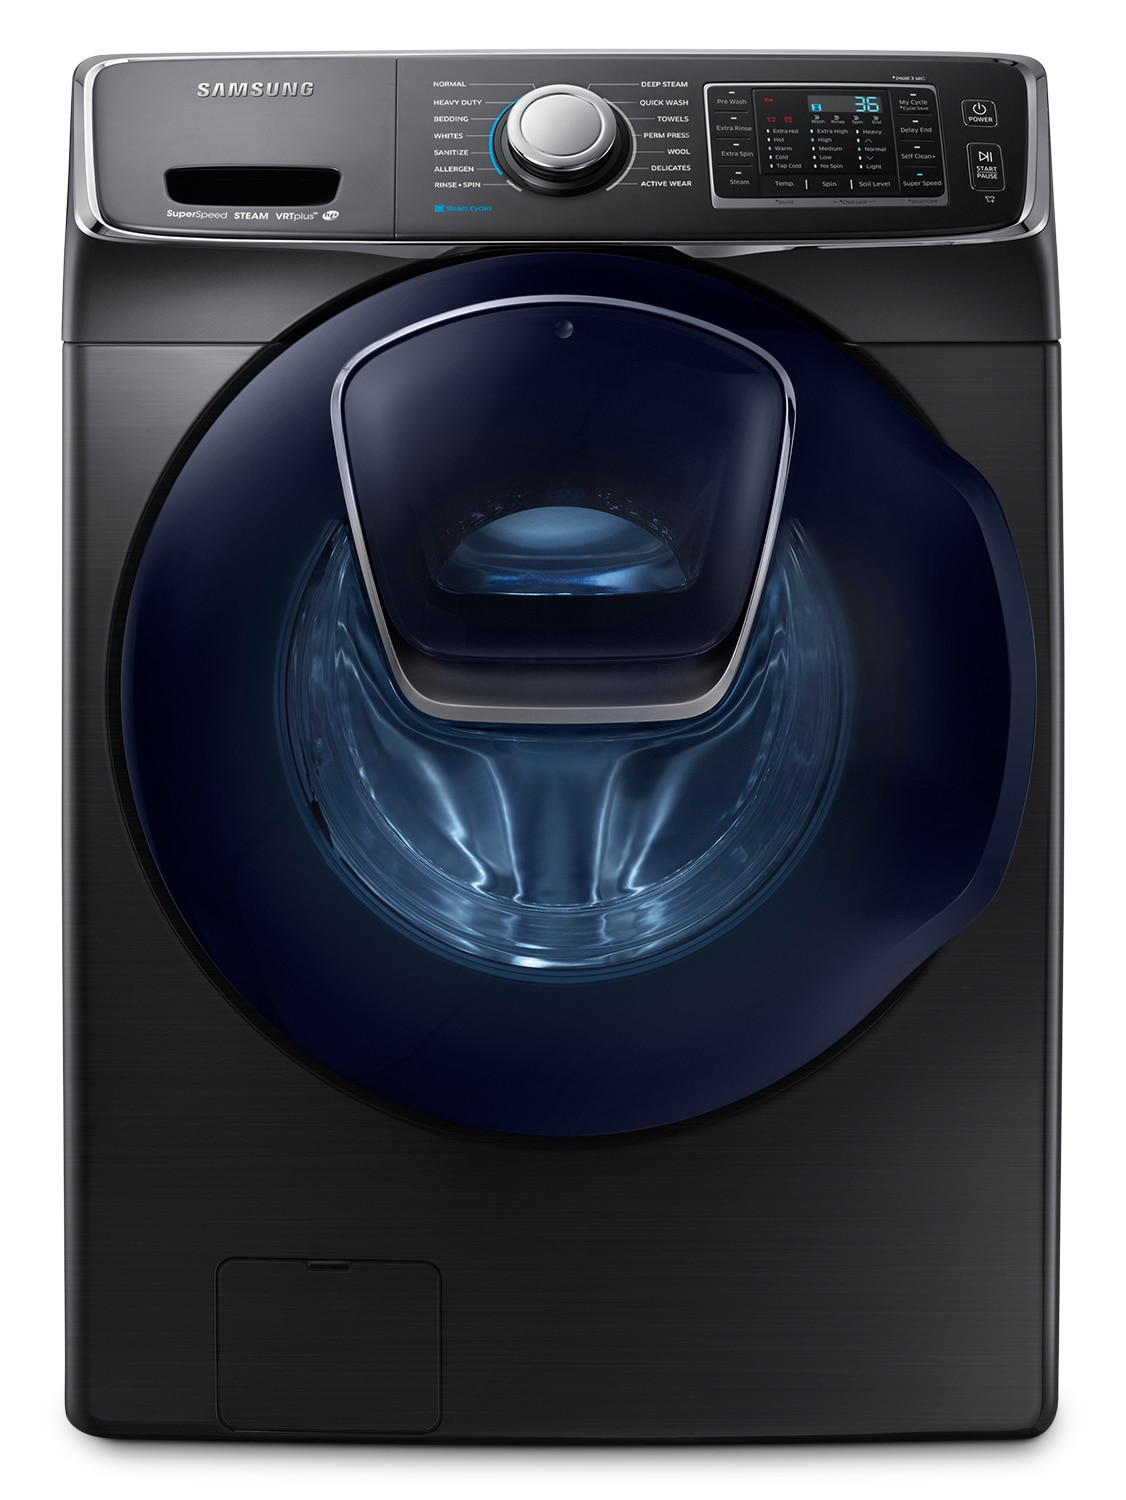 Samsung Black Stainless Steel Front-Load Washer (5.2 Cu. Ft.) - WF45K6500AV/A2